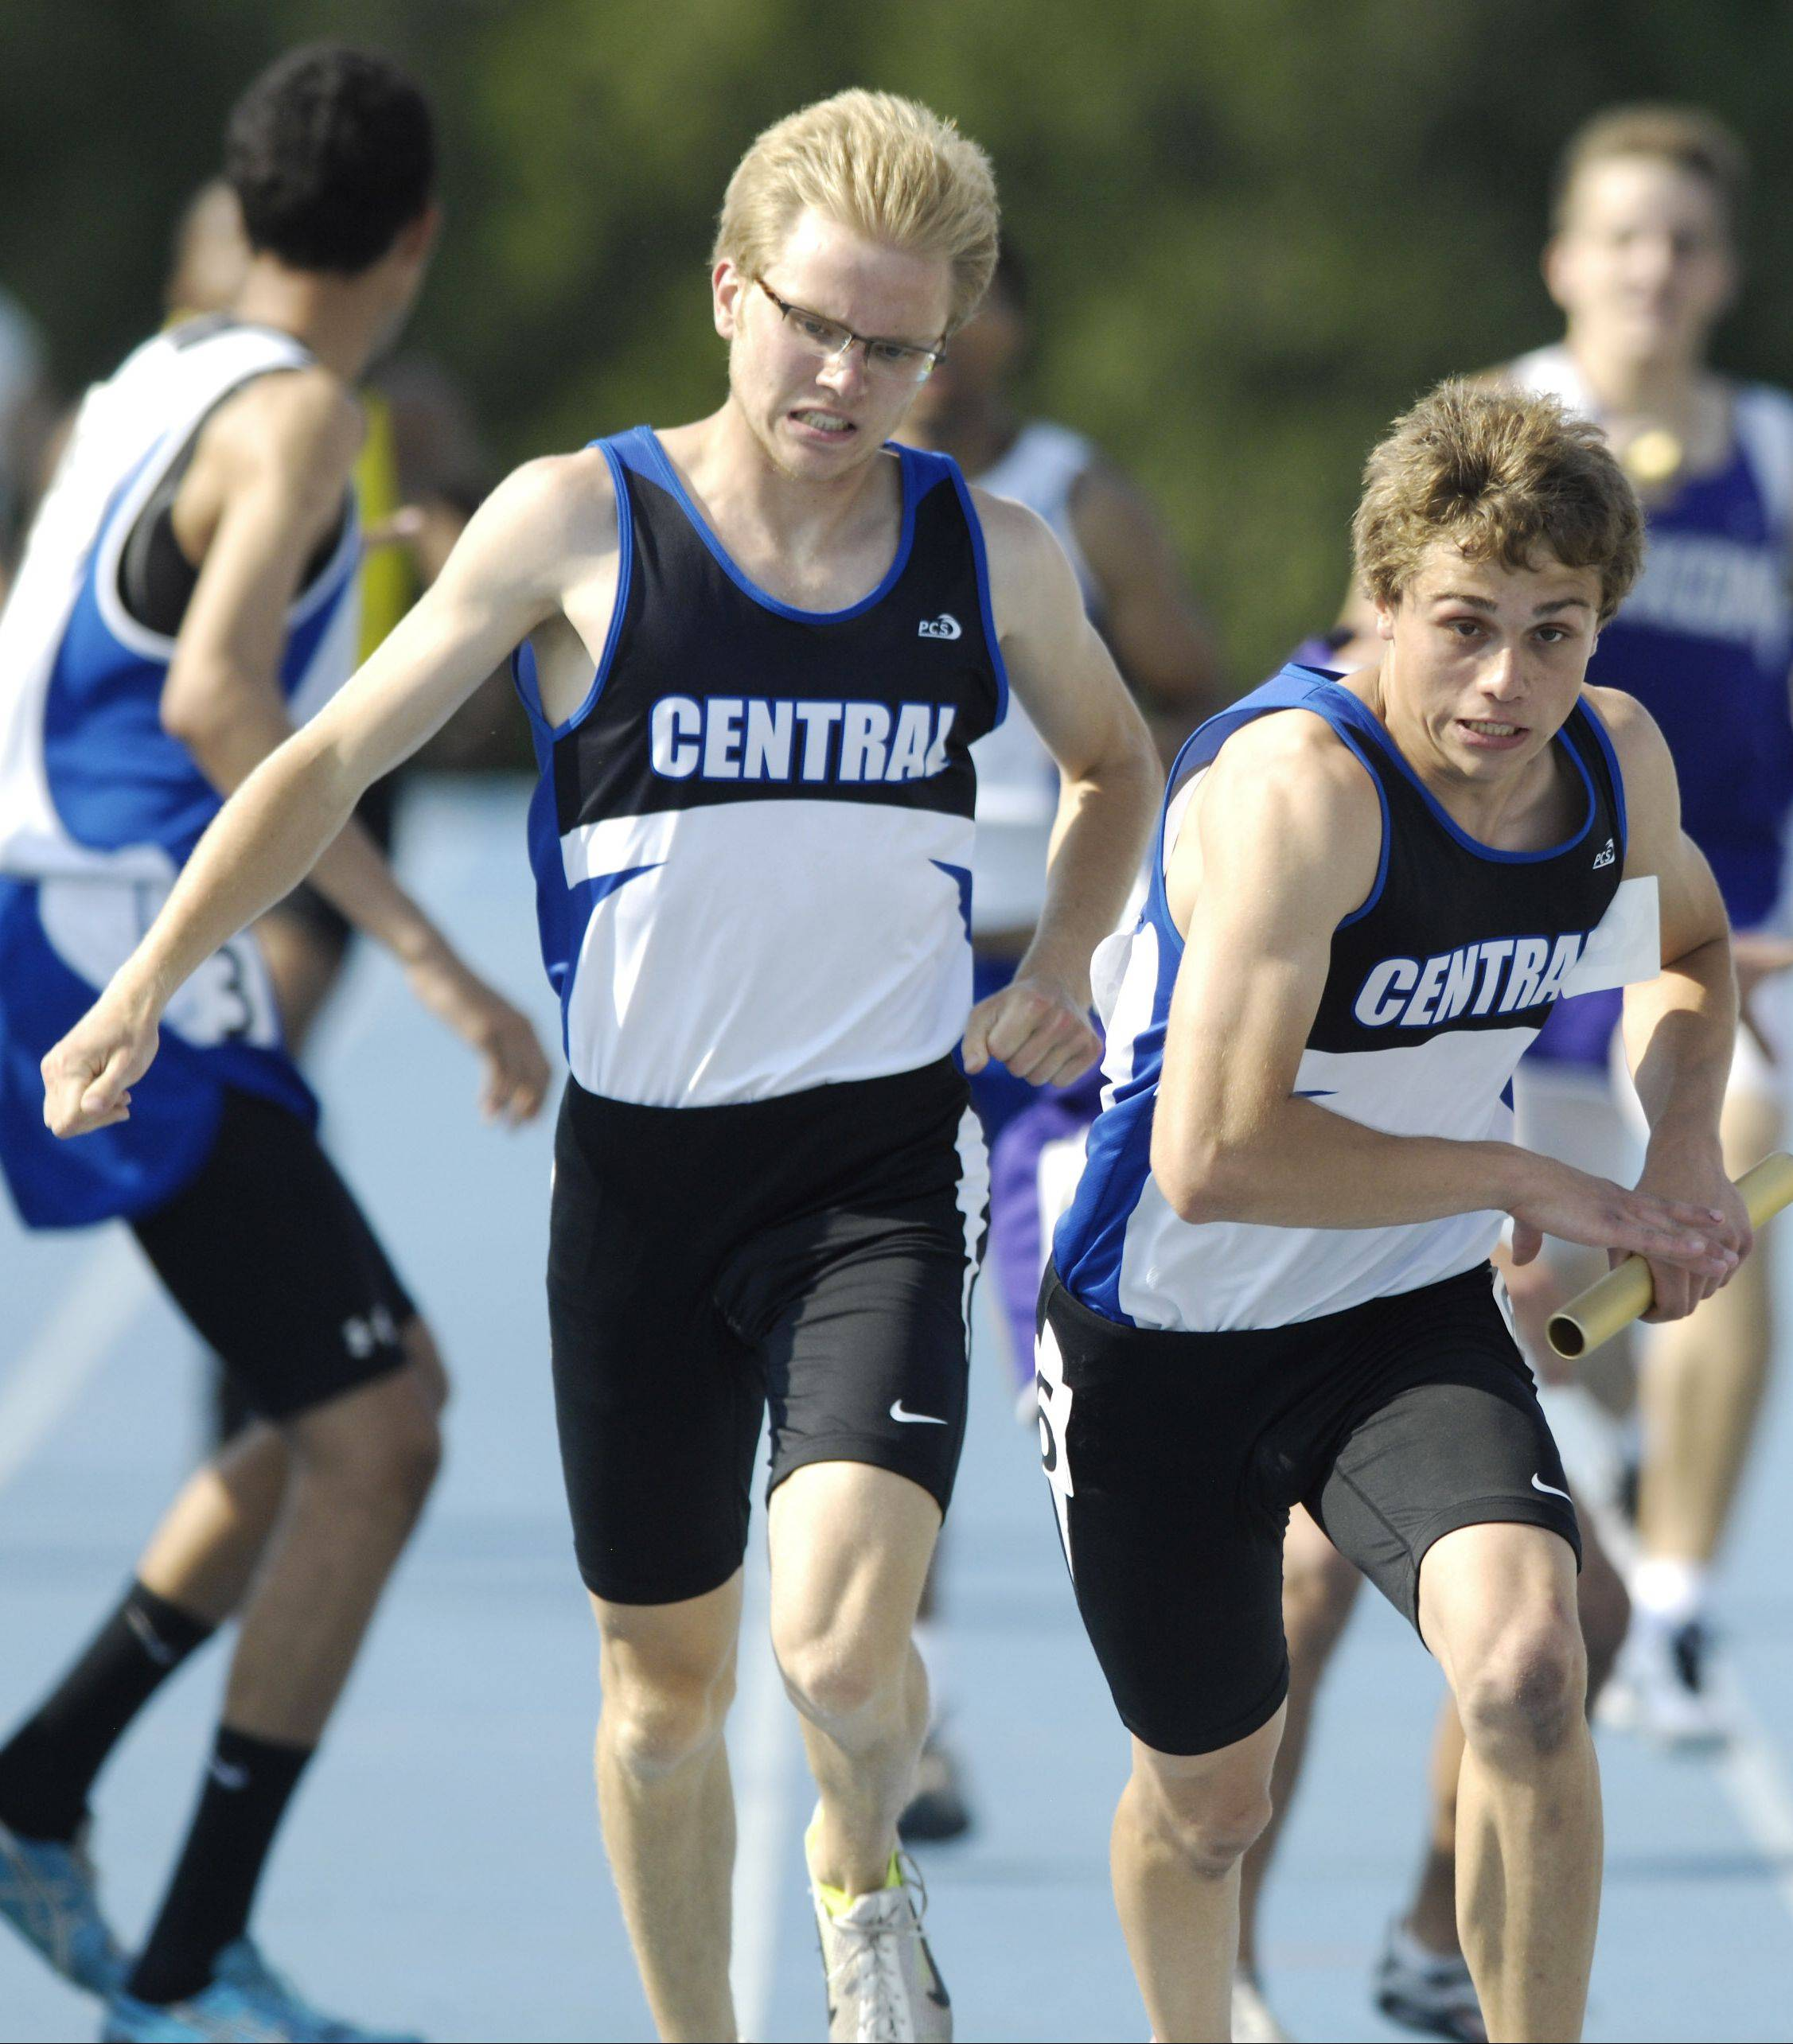 Burlington Central's Ryan Olsen takes the baton from teammate Clint Kliem in the Class 2A 1,600-meter relay during the IHSA boys state track finals in Charleston last year.